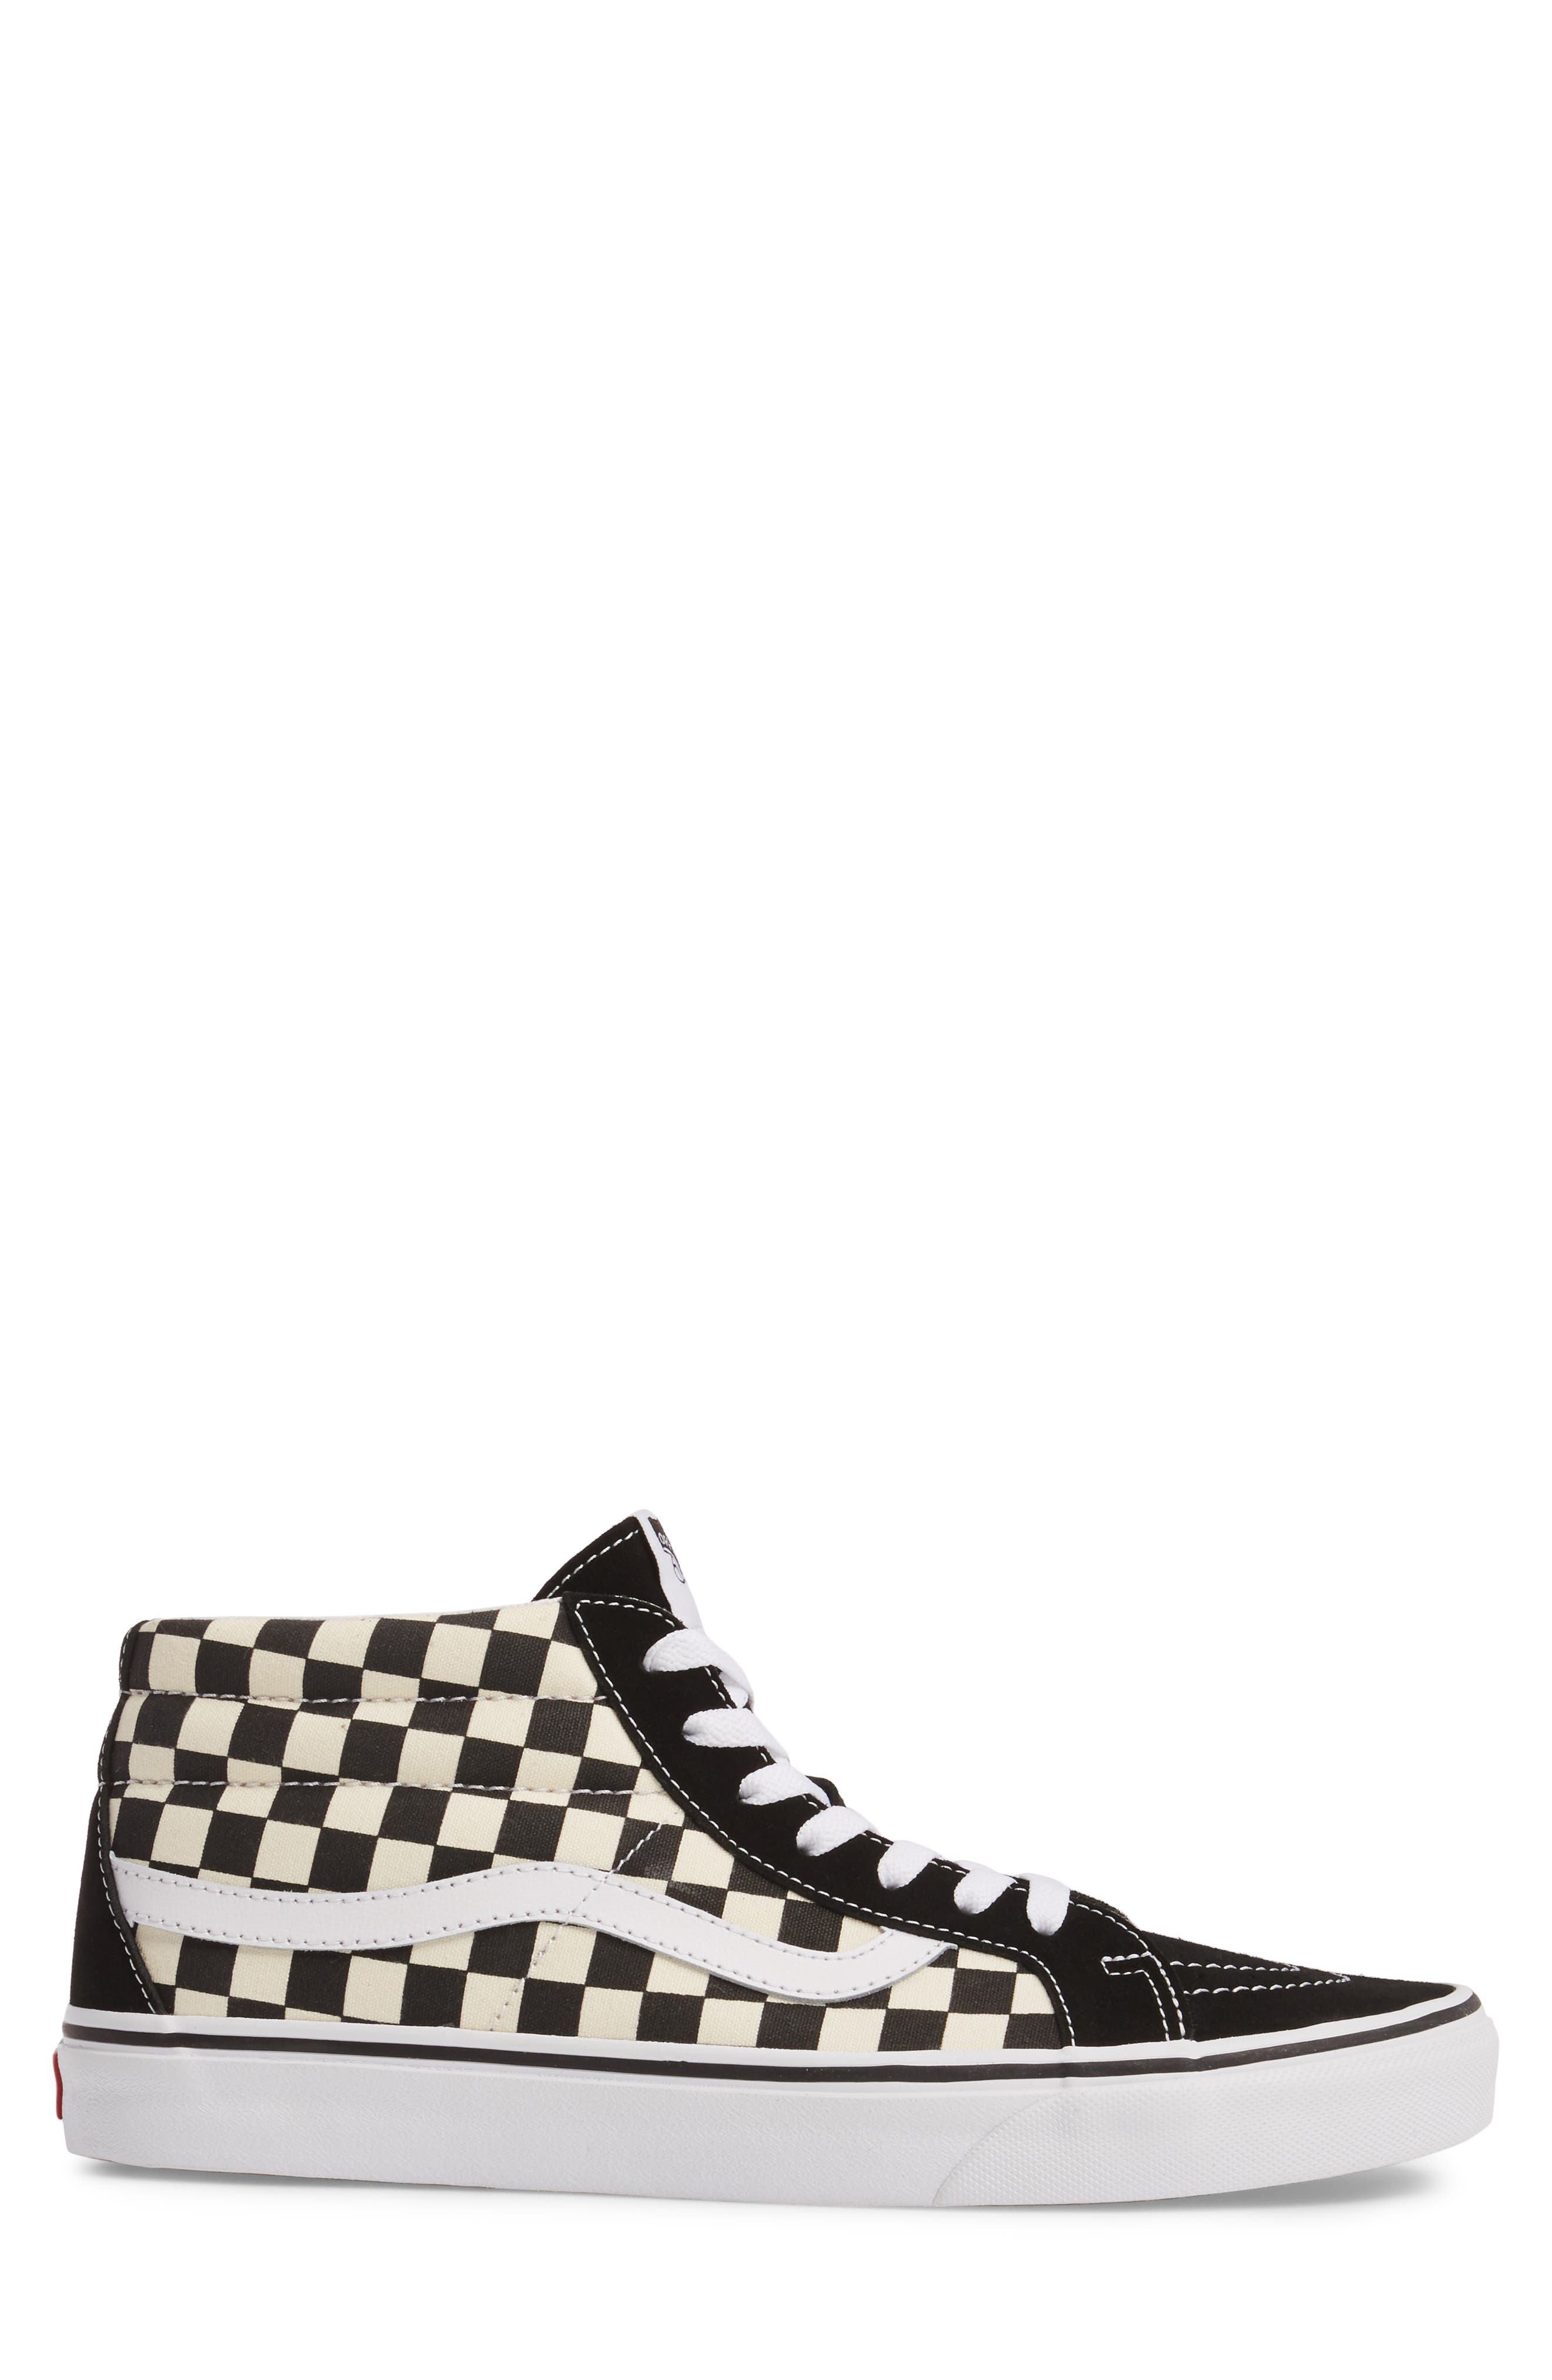 Sk8-Mid Reissue Sneaker,                             Alternate thumbnail 3, color,                             White Checker Canvas/ Suede